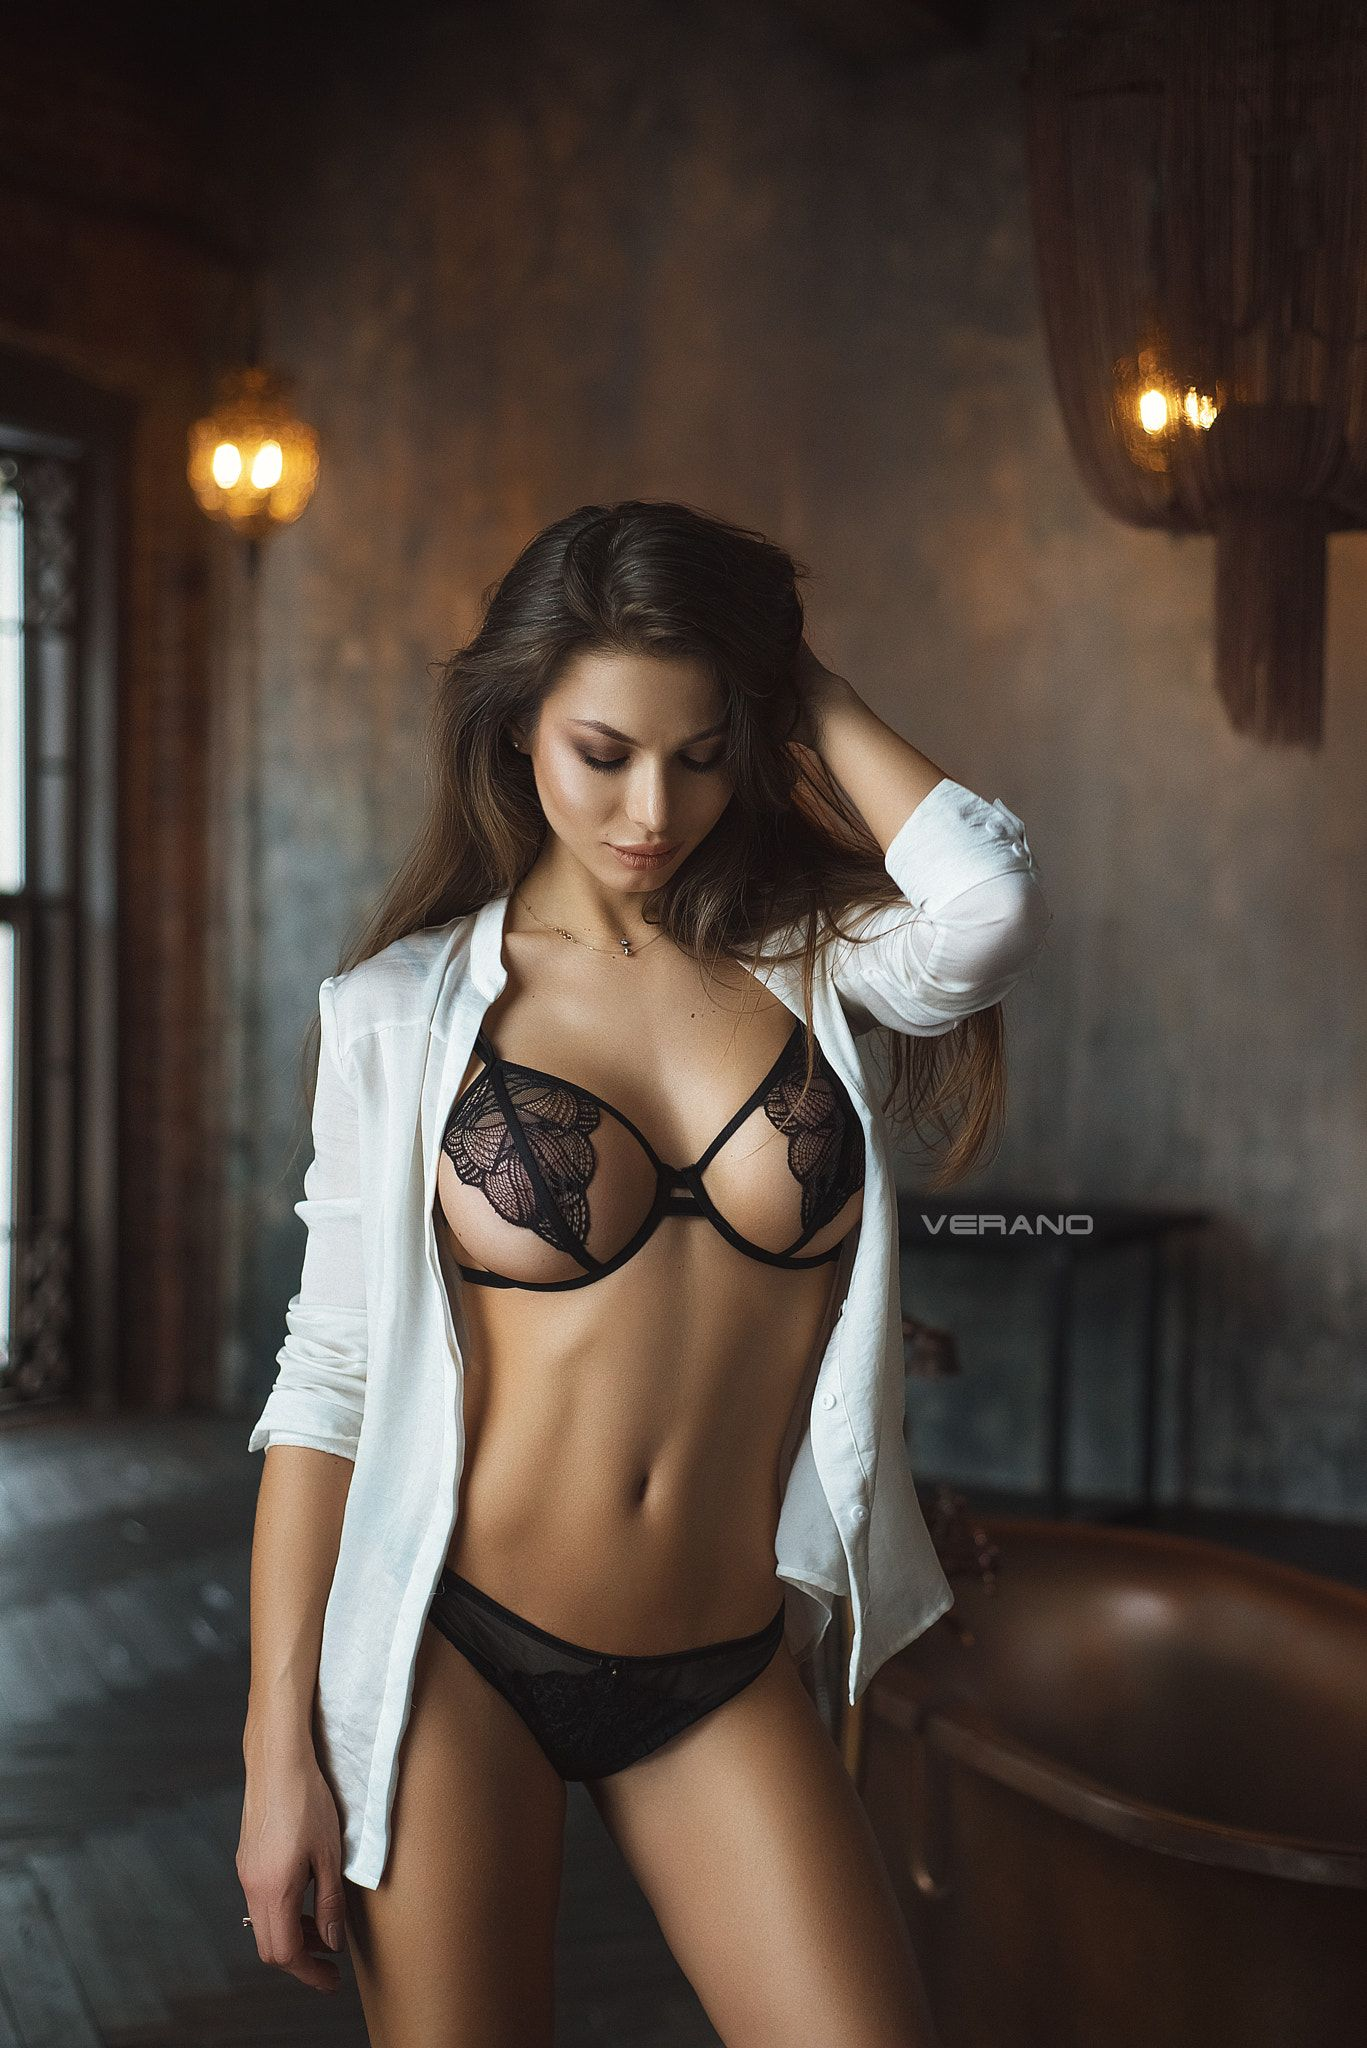 beautiful boobs girl in sexy lingerie